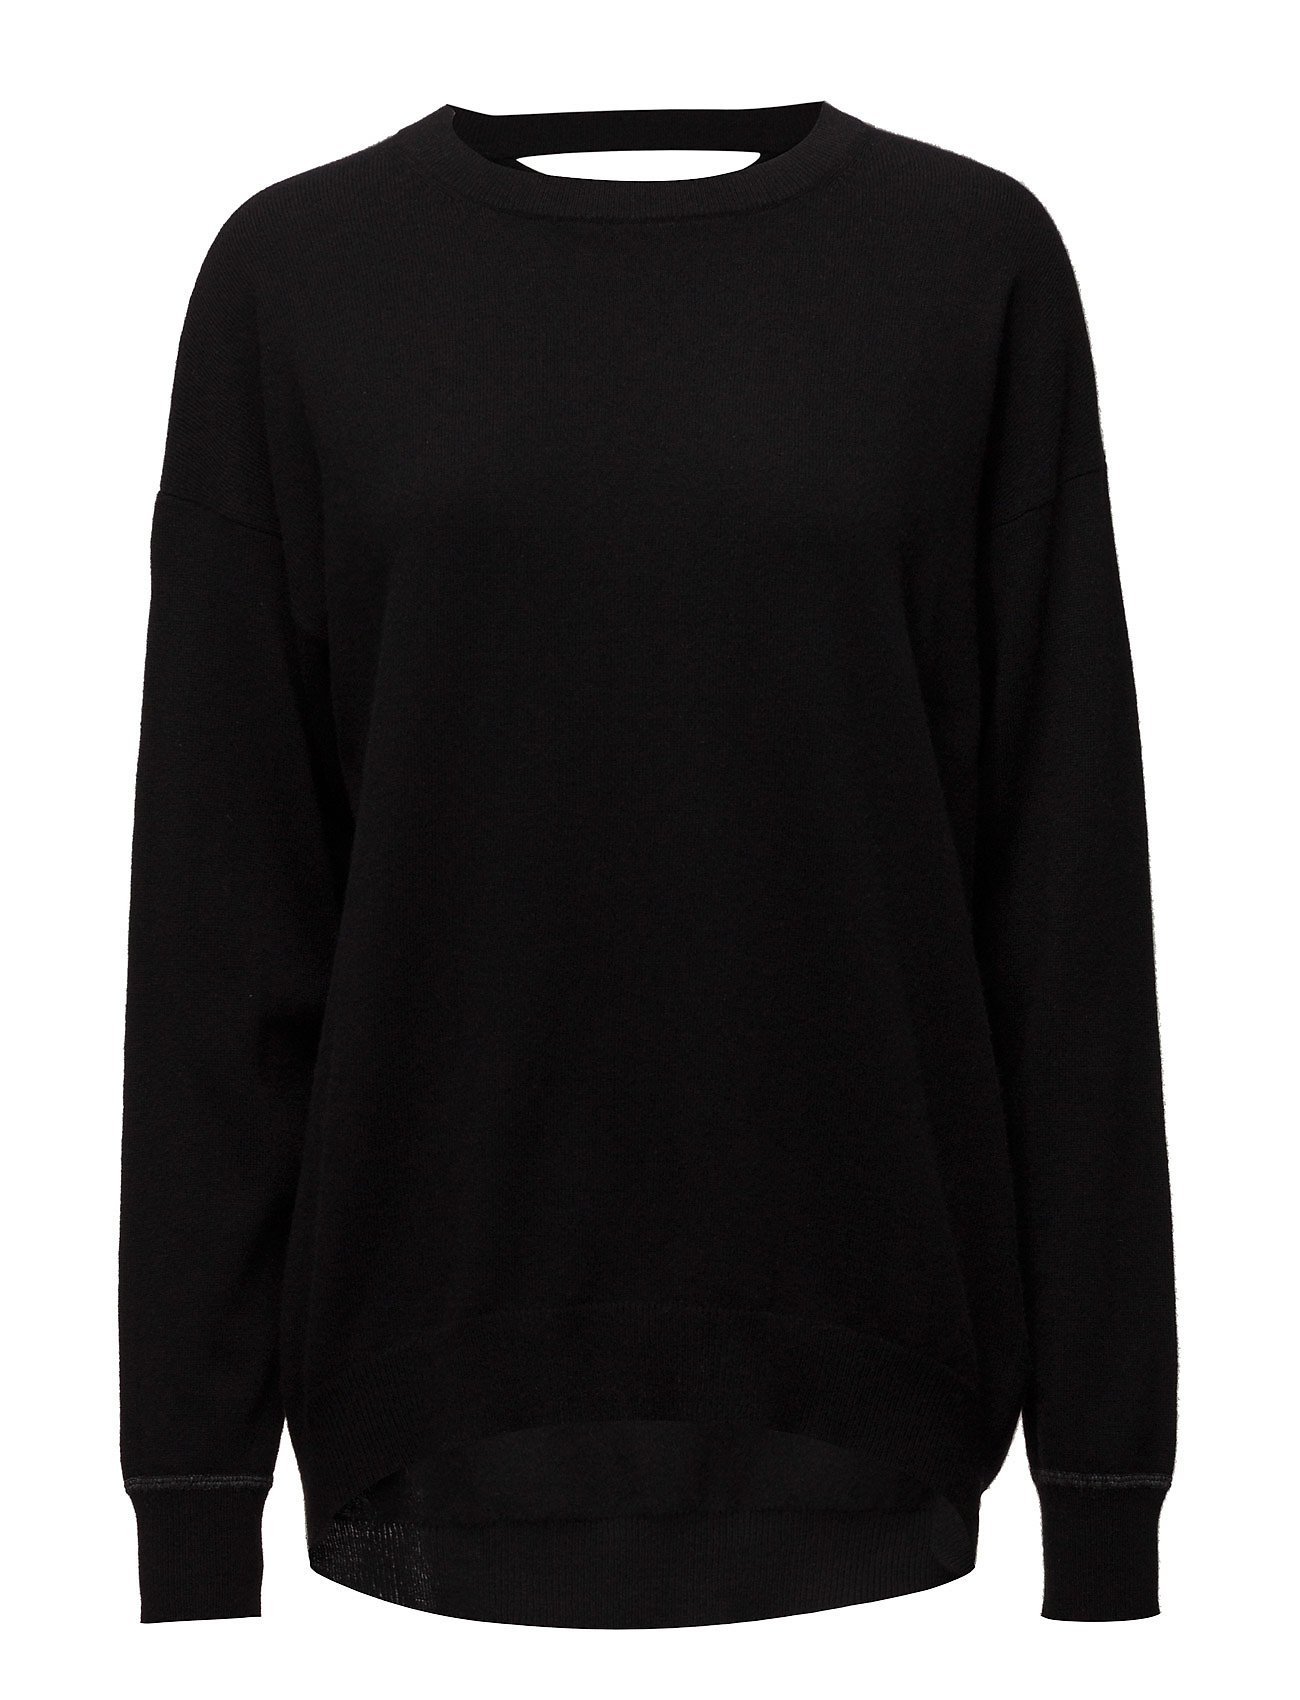 Image of Cashmere Sweater (2692777025)